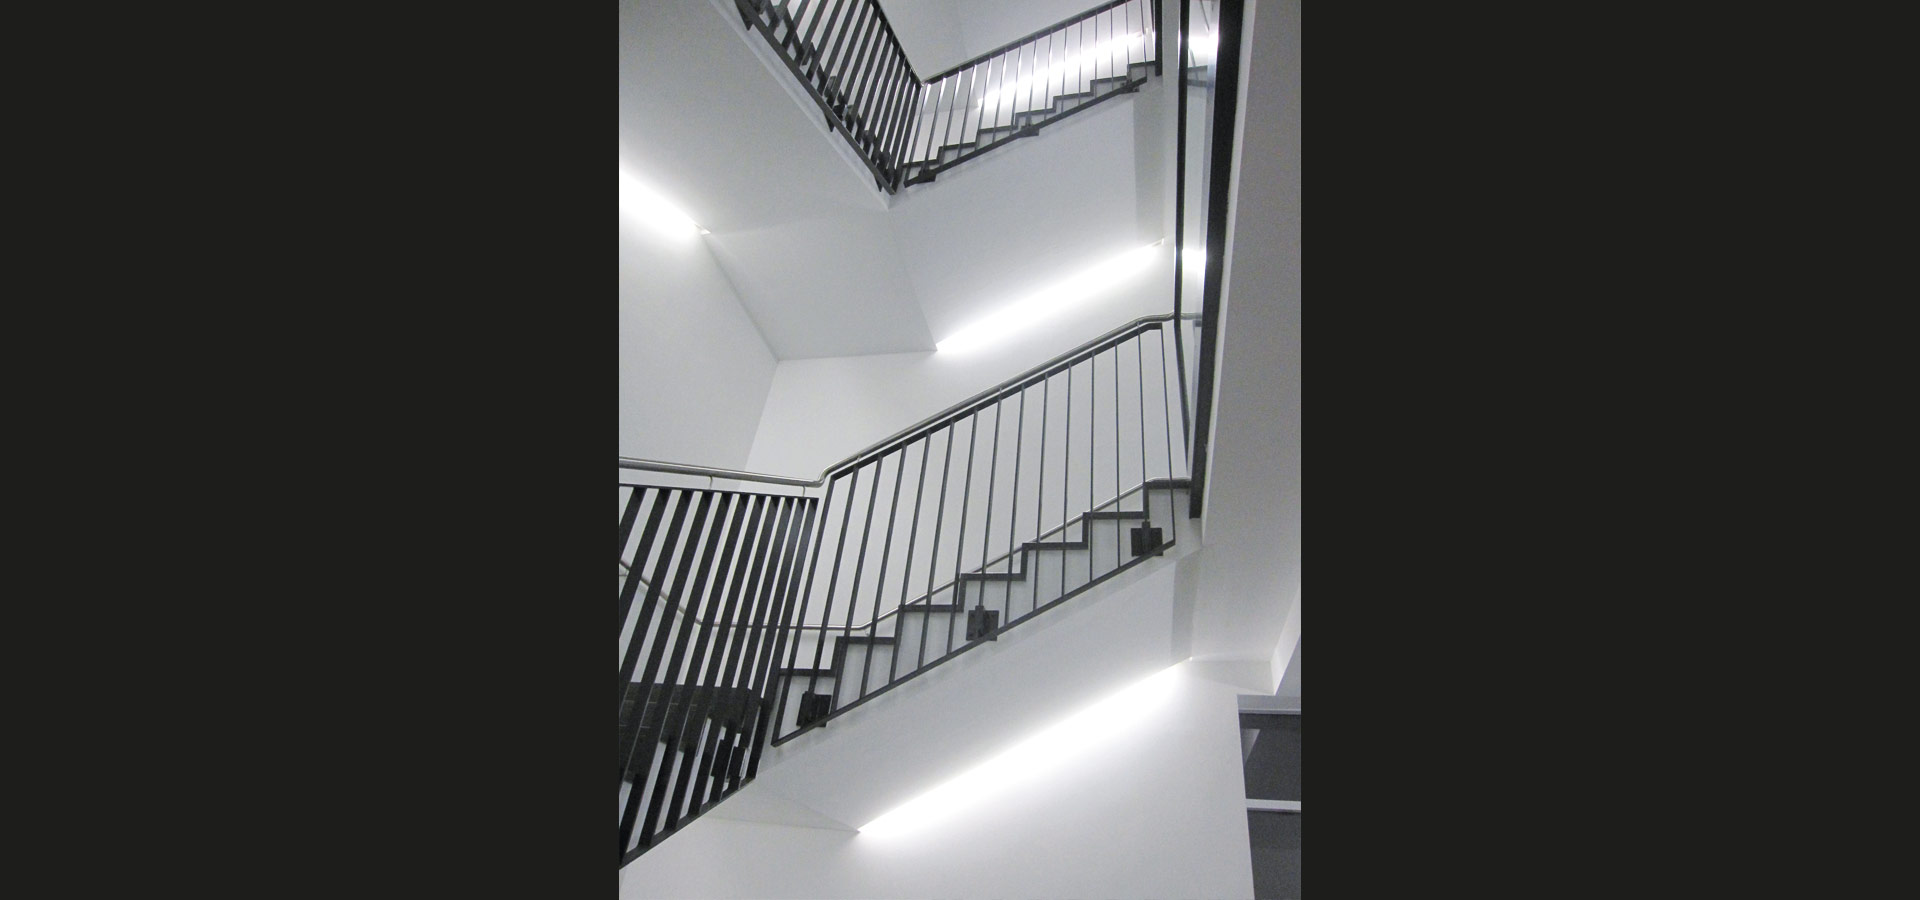 Luxsystem luminaires staircase lighting for hospitals light strip optimally illuminate